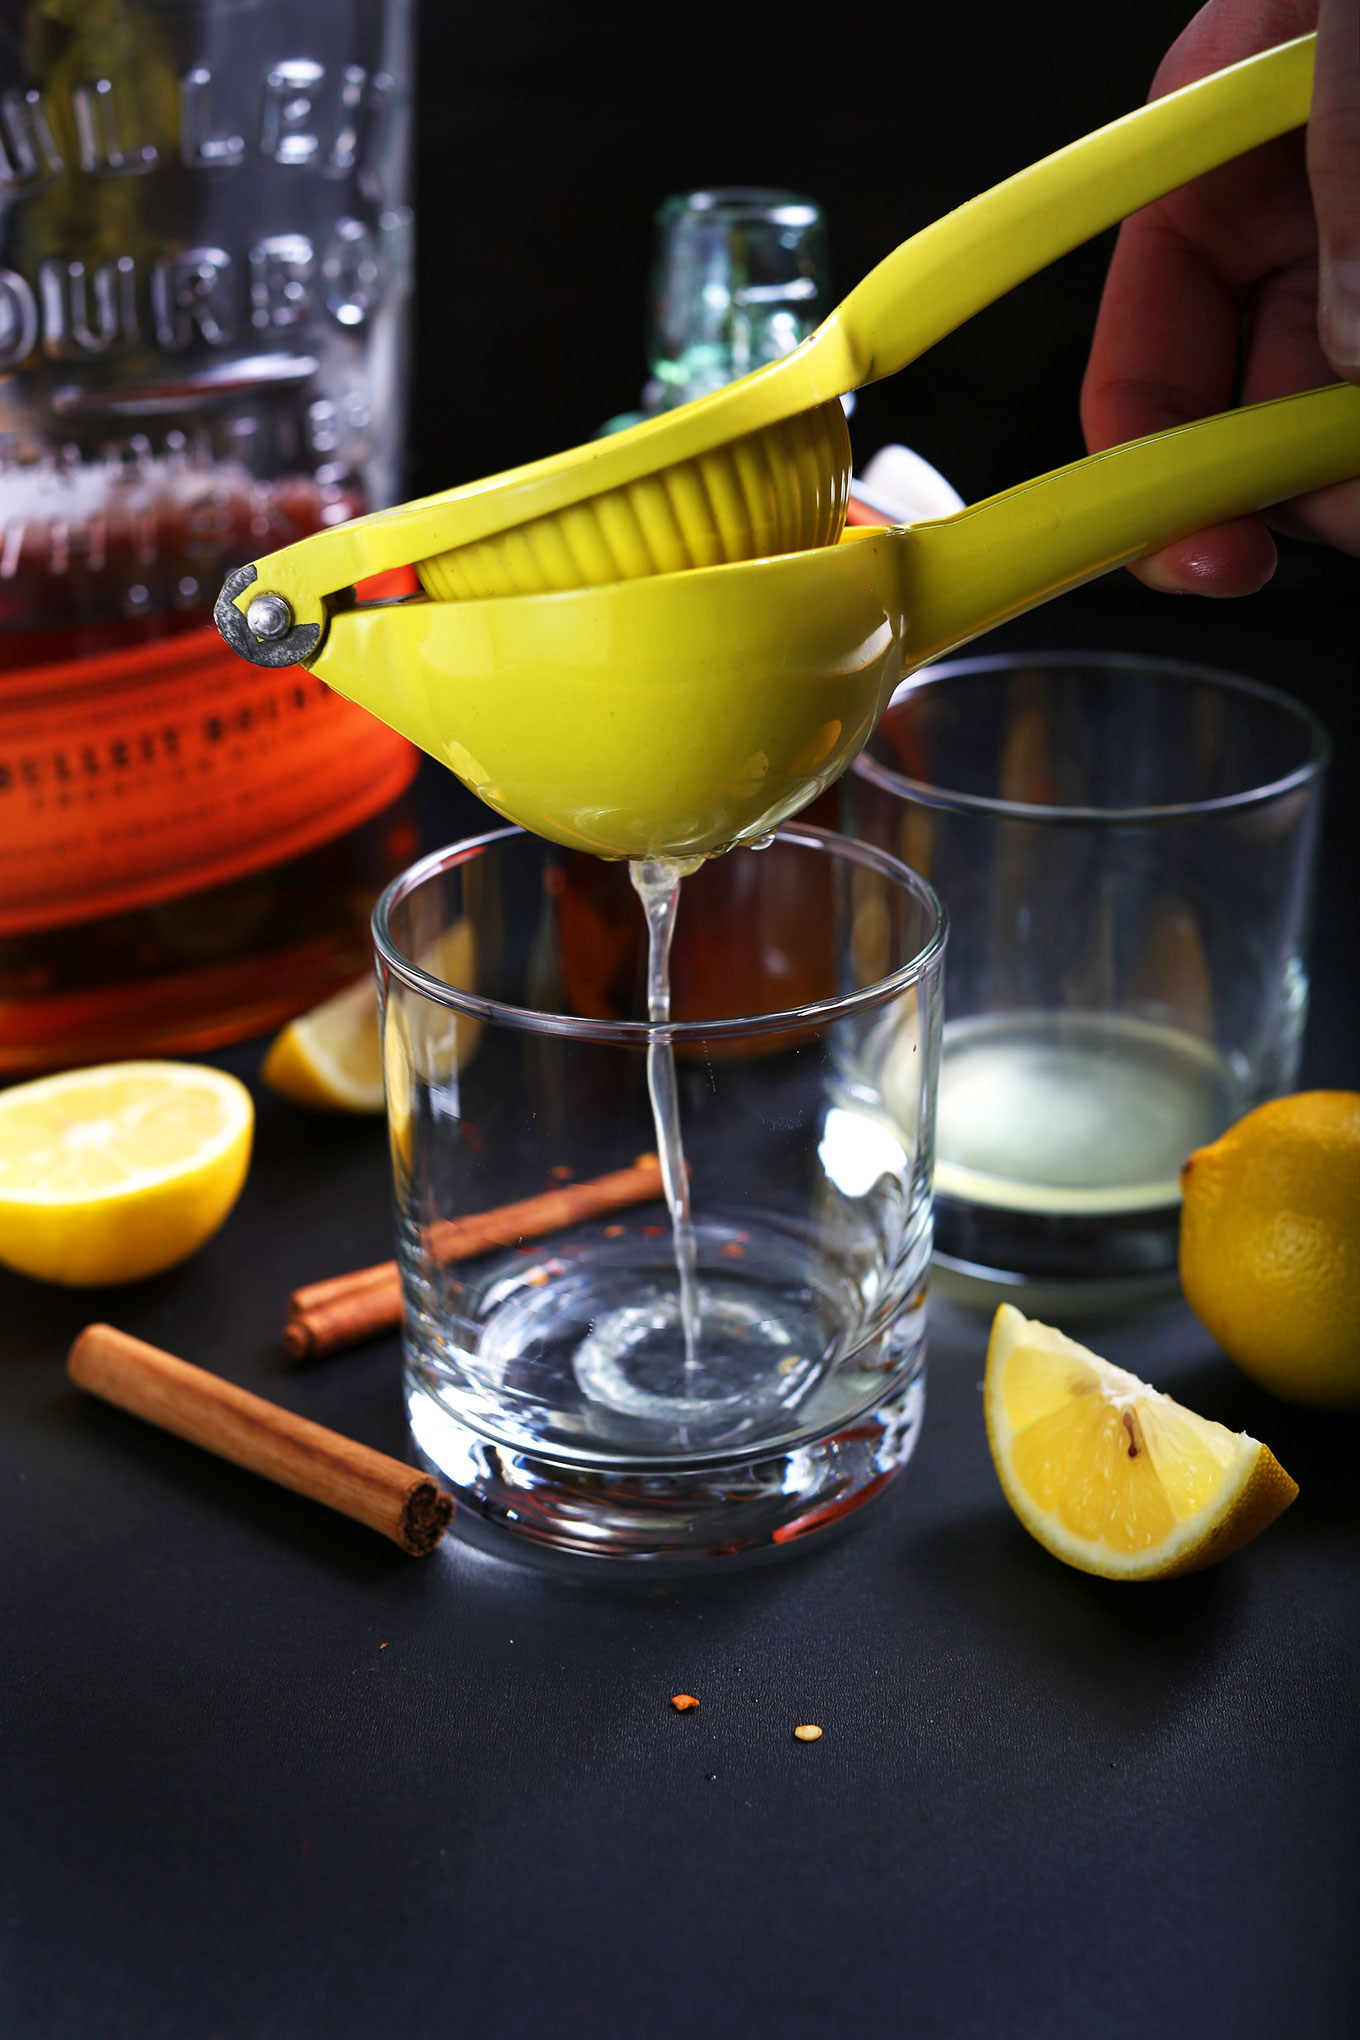 Squeezing lemon juice into glasses to make the ultimate homemade Hot Toddy